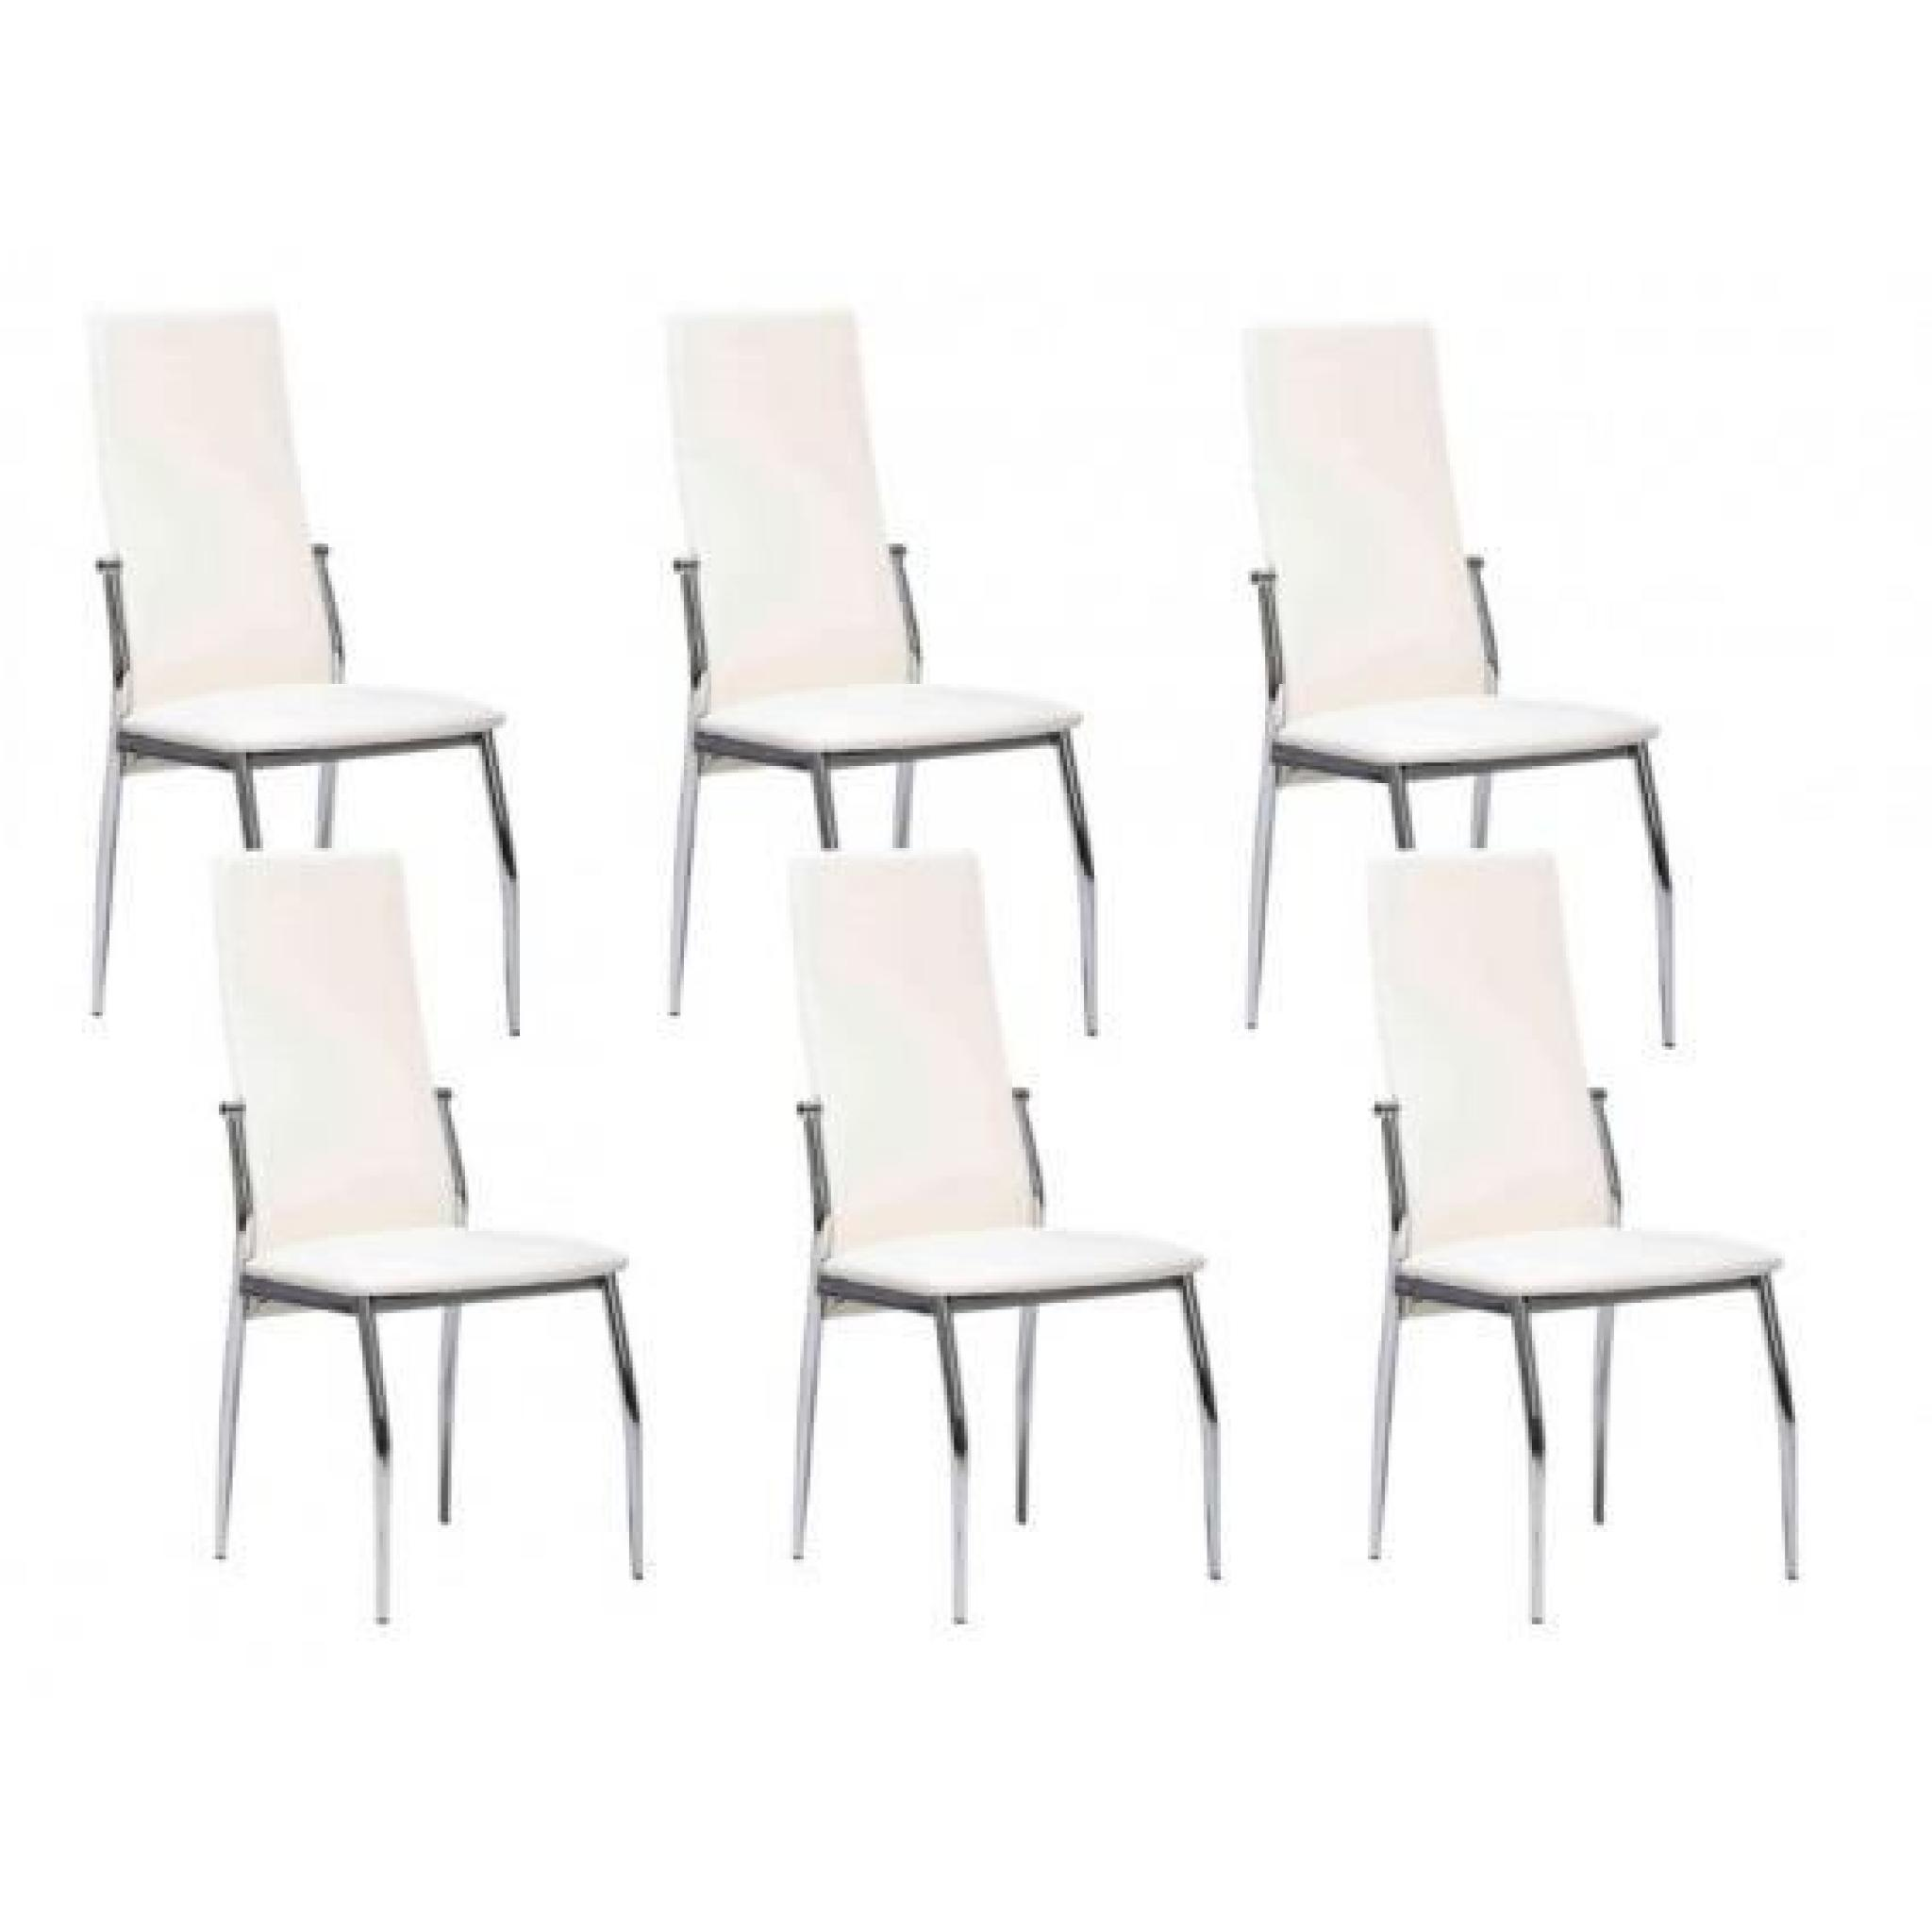 city lot 6 chaises blanches achat vente chaise salle a manger pas cher couleur et. Black Bedroom Furniture Sets. Home Design Ideas